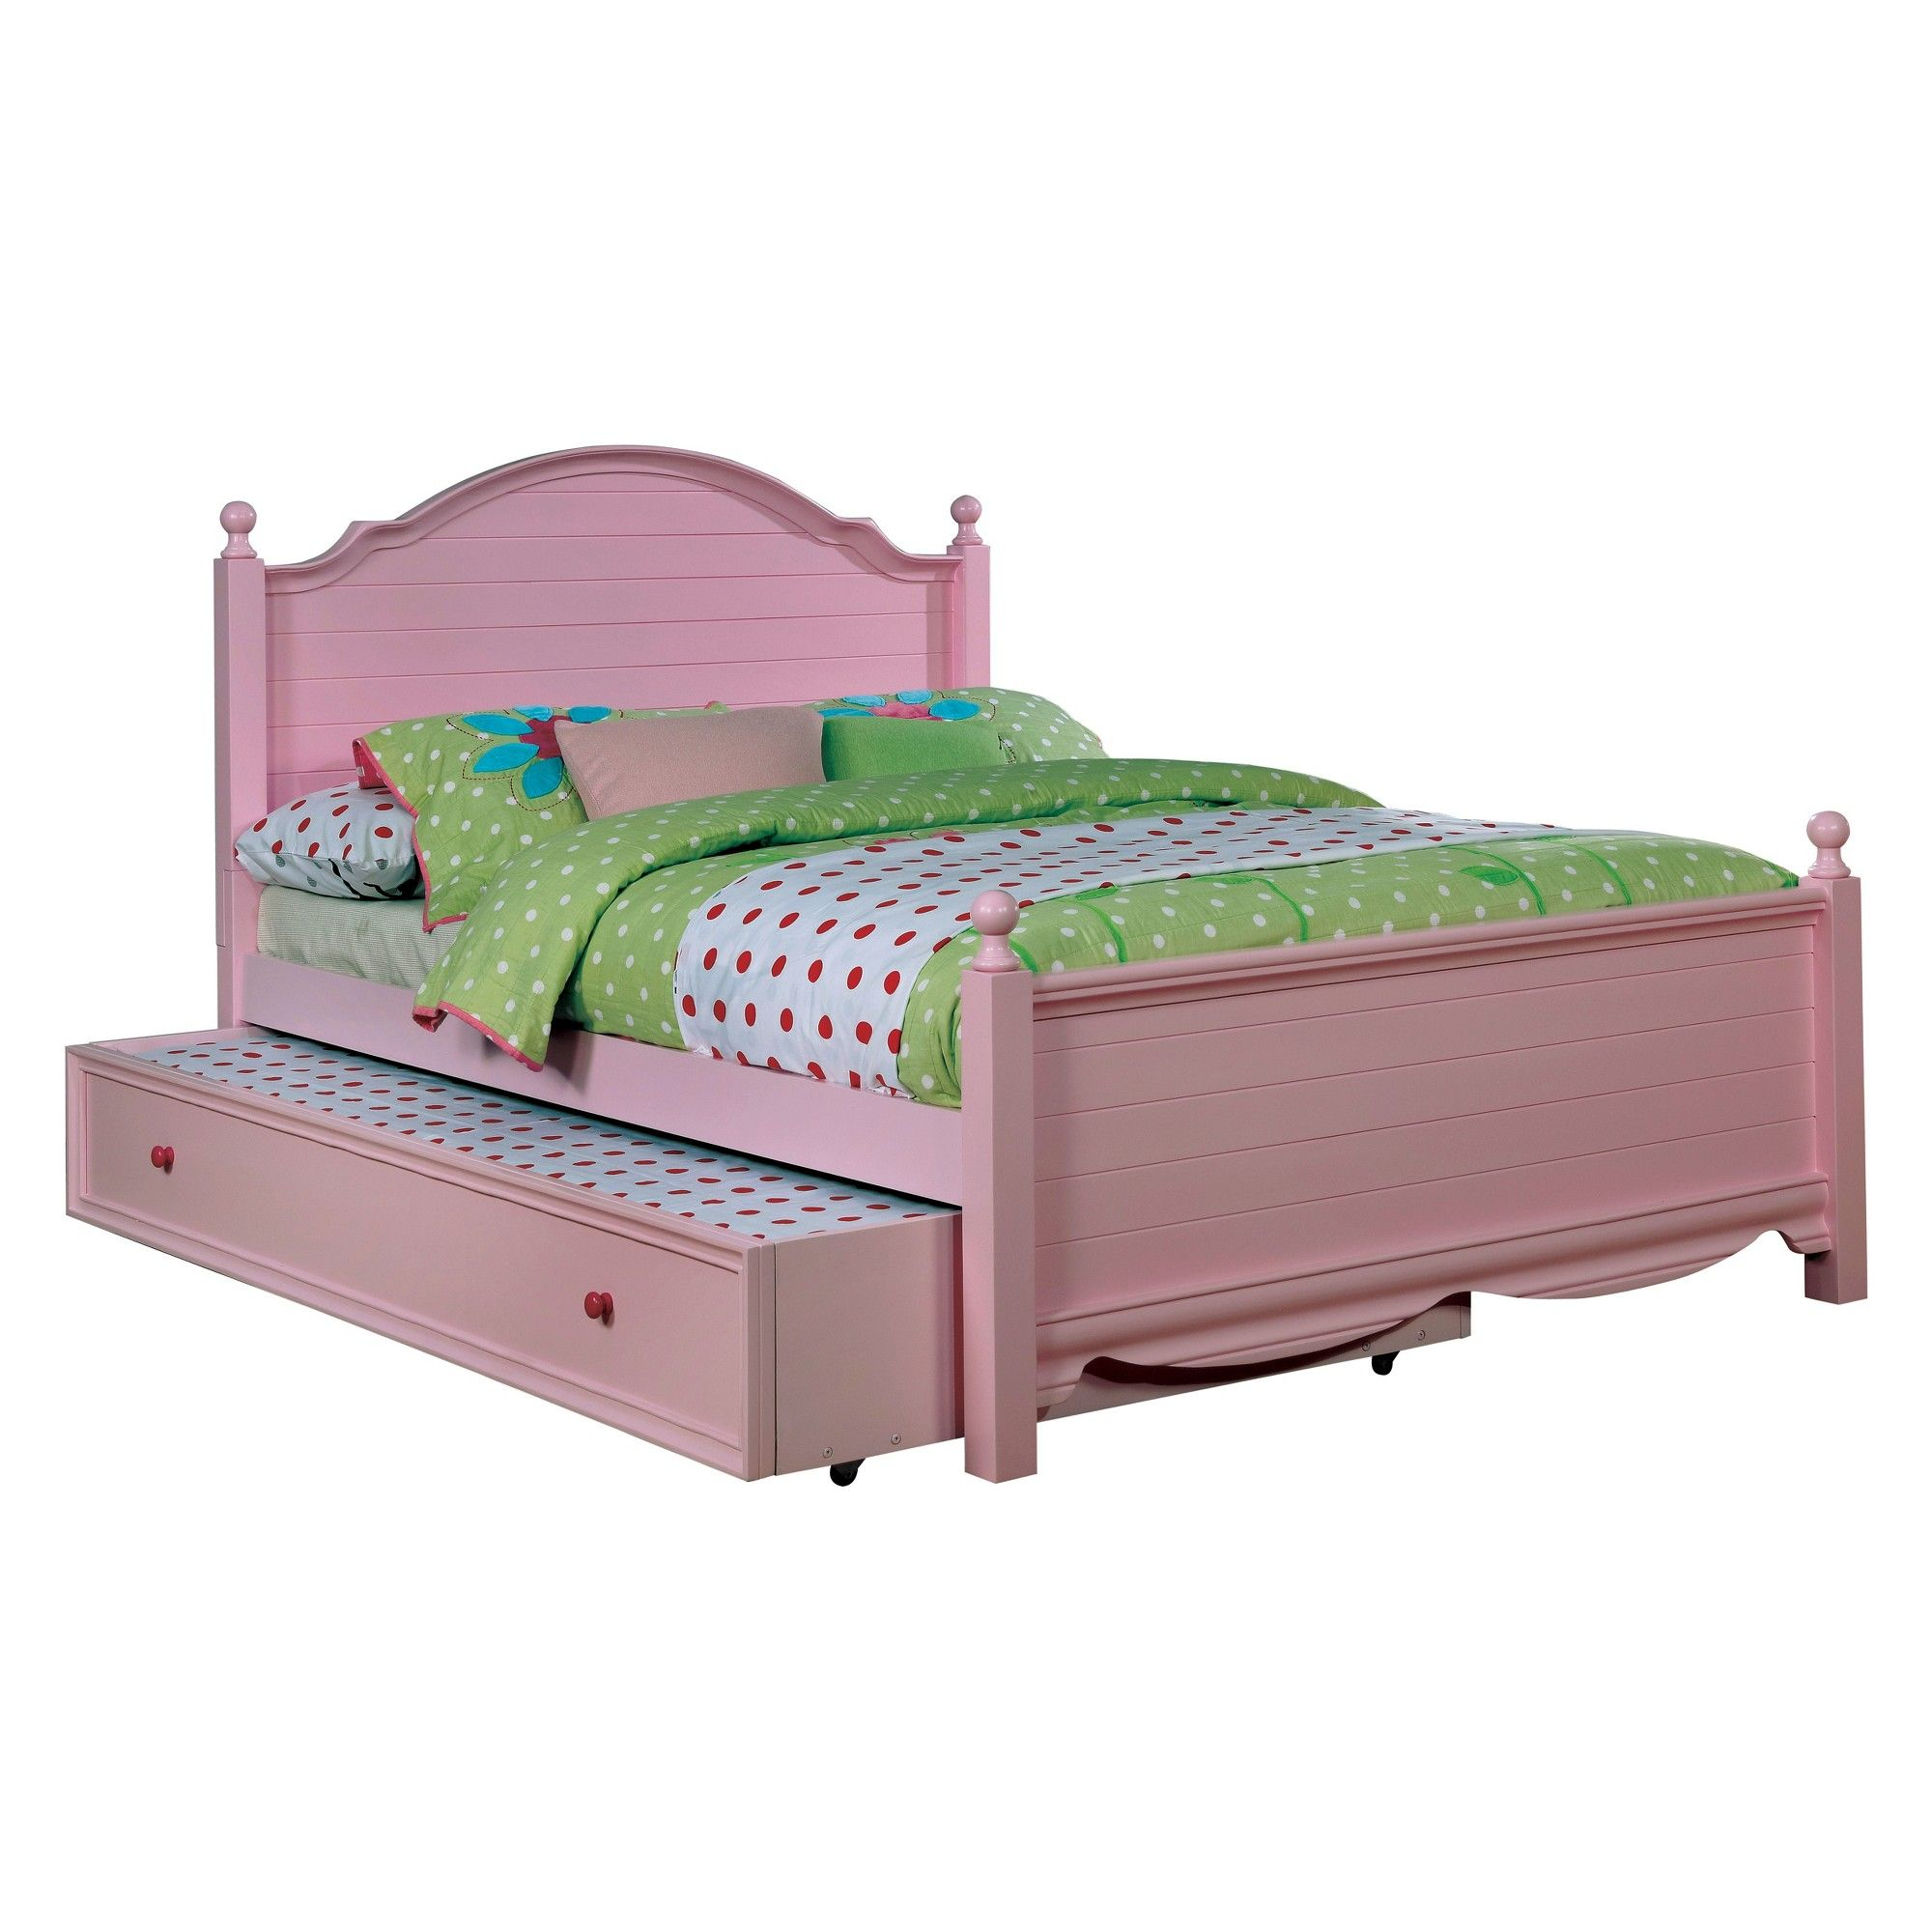 Iohomes Ranallo Contemporary Trundle Pink Full Homes Inside